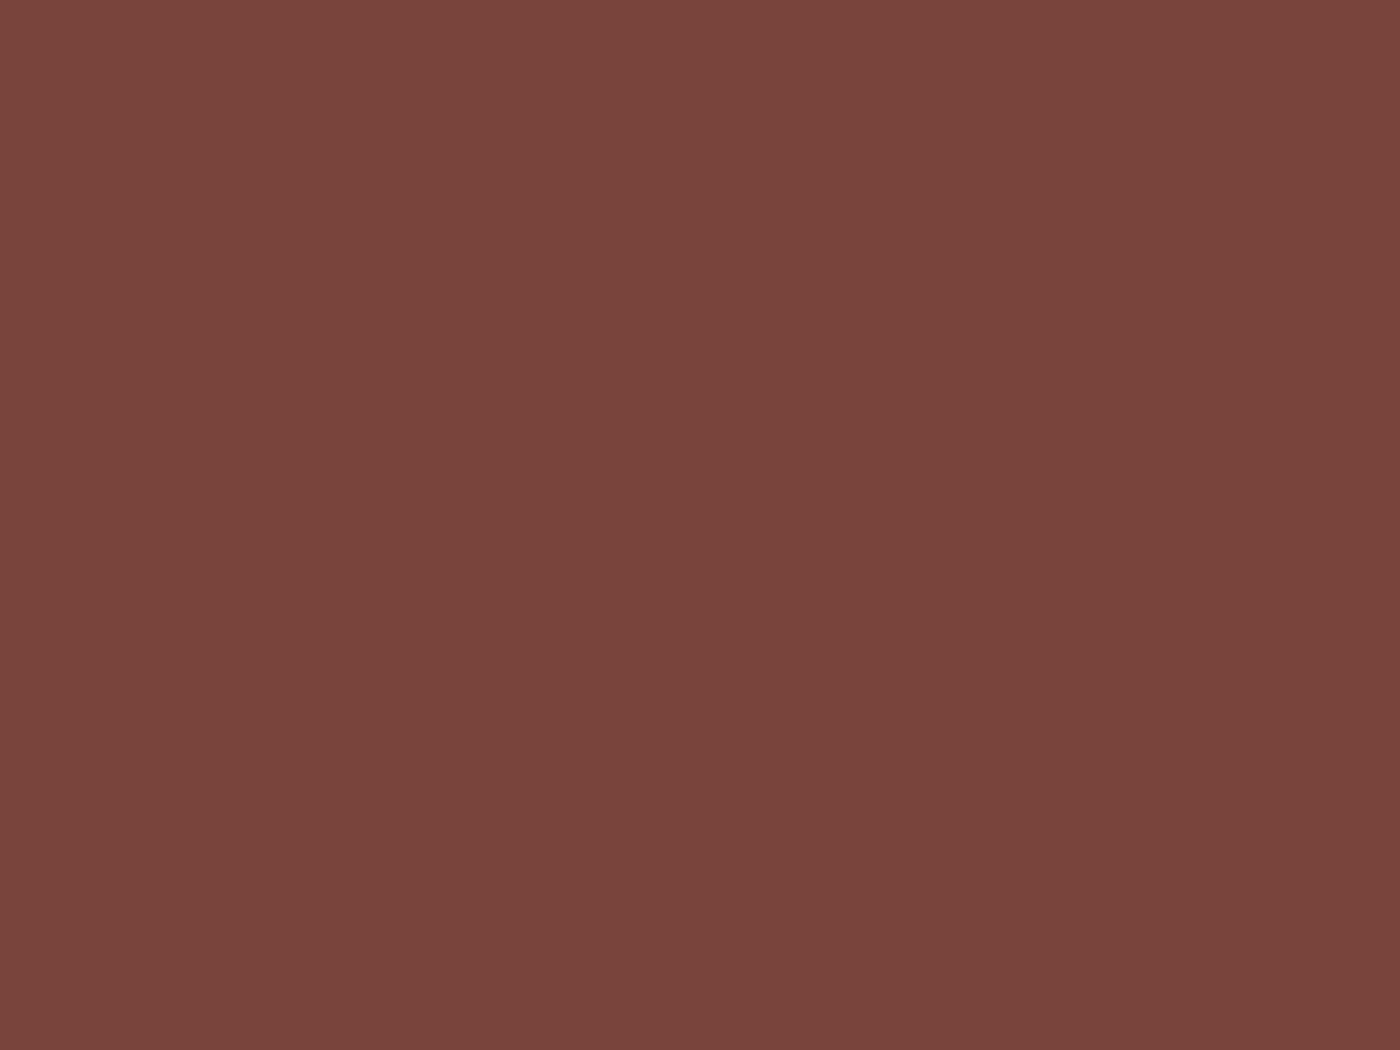 1400x1050 Medium Tuscan Red Solid Color Background